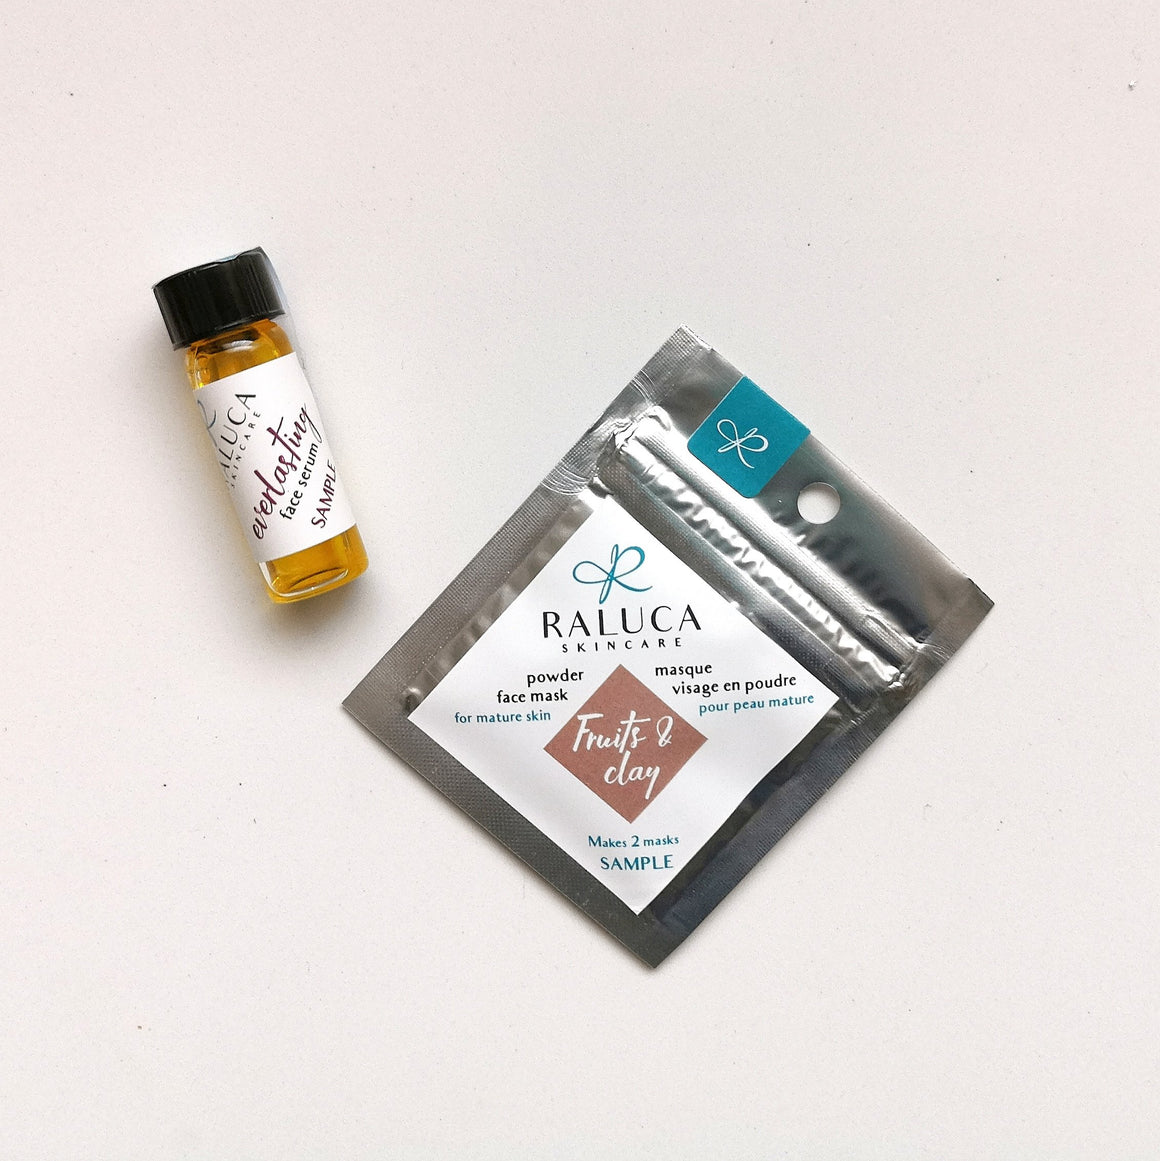 Raluca Skincare - mini beauty kit - for dry or mature skin